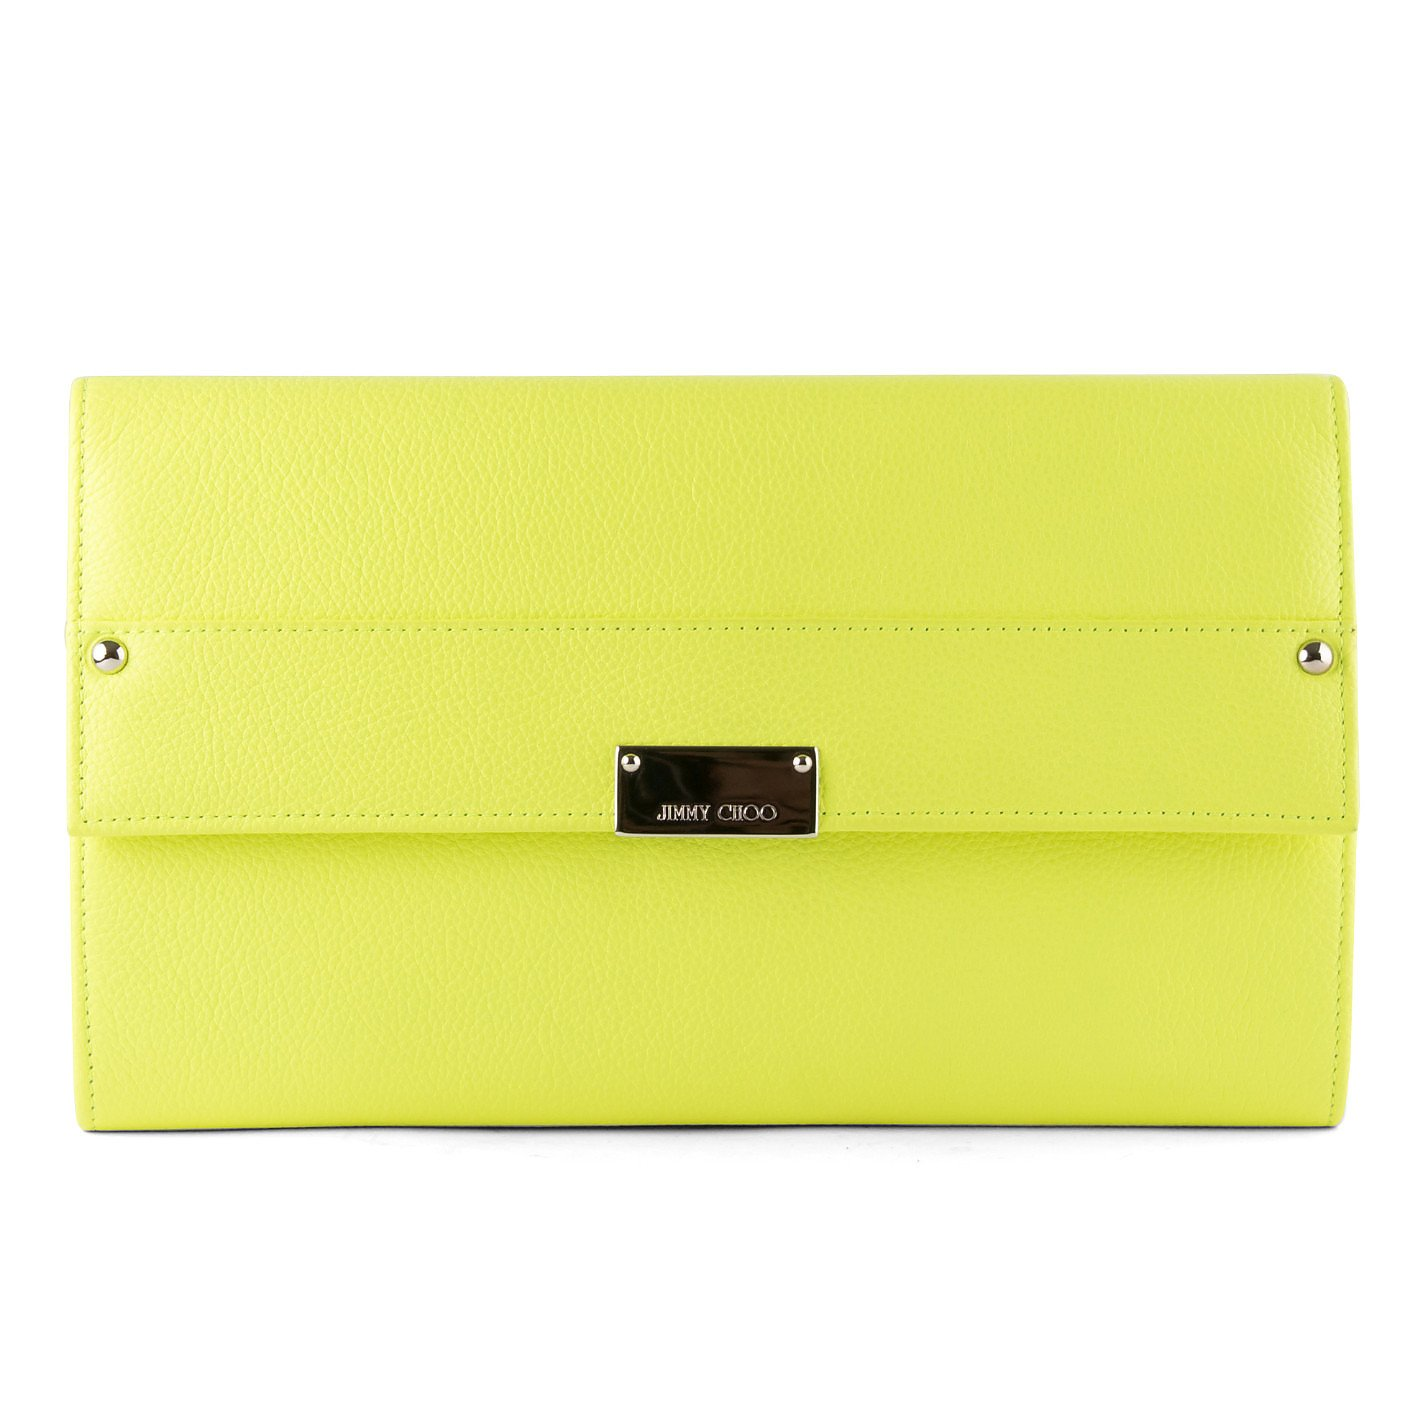 Jimmy Choo Neon Textured Leather Clutch